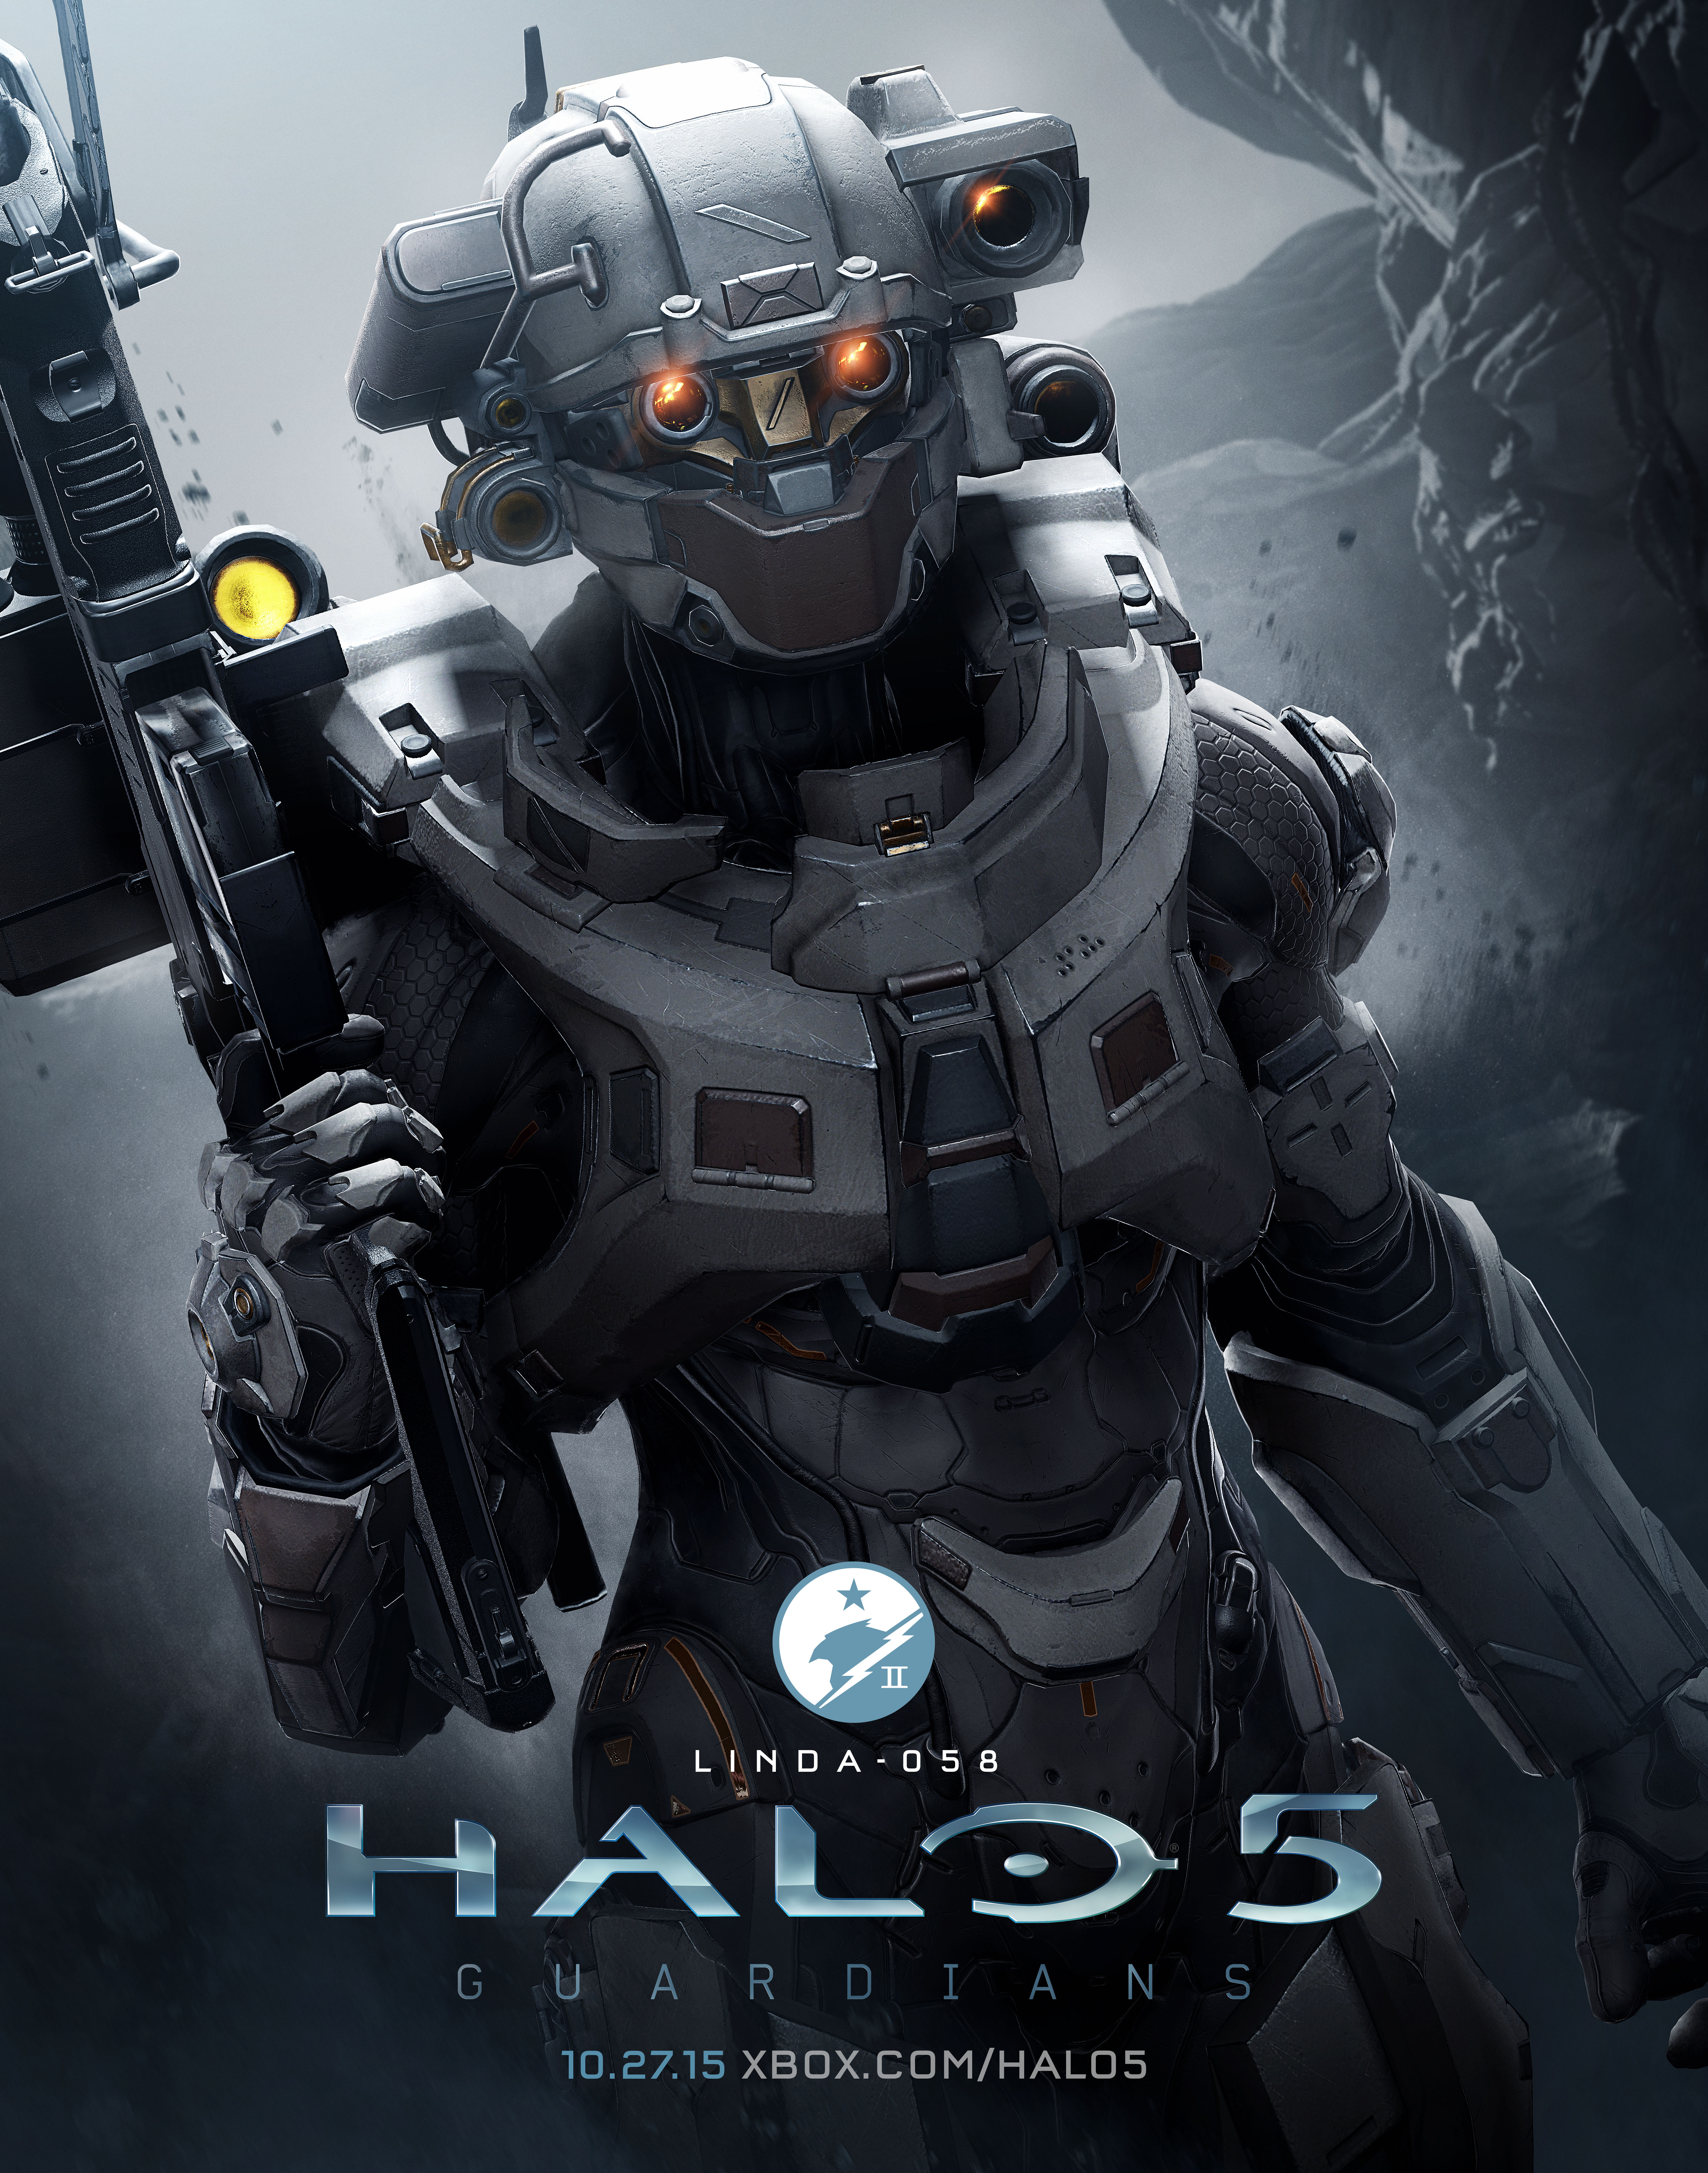 Halo 5 Guardians   Animated Poster Trailer (Xbox One) - YouTube